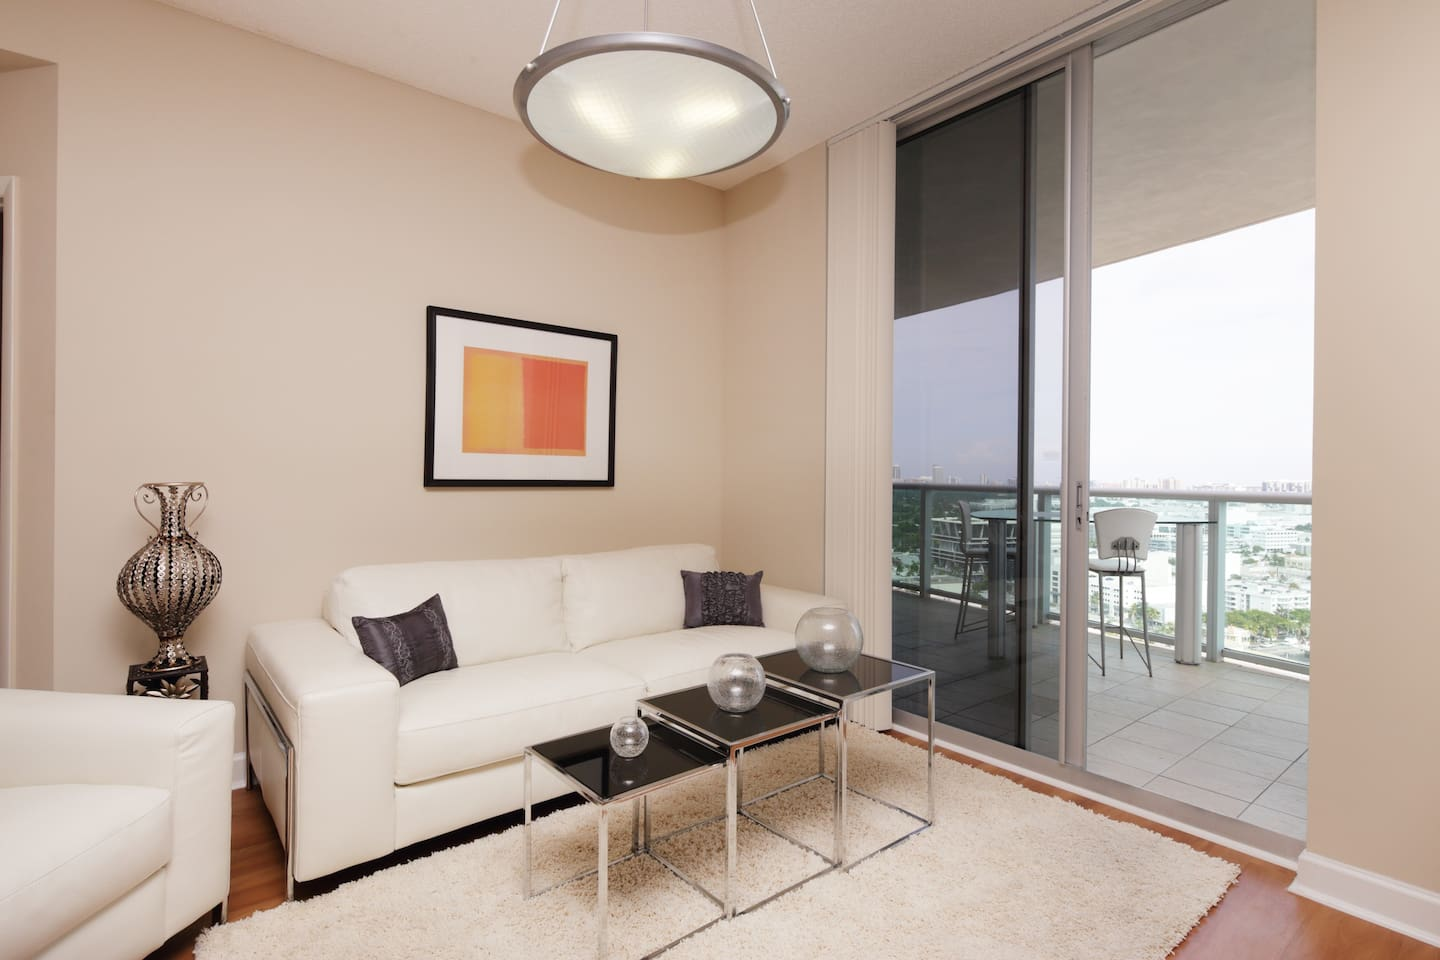 Luxury Living Room With Cable HDTV and Wi-Fi that Opens Up to the Balcony Over Looking The City and Ocean